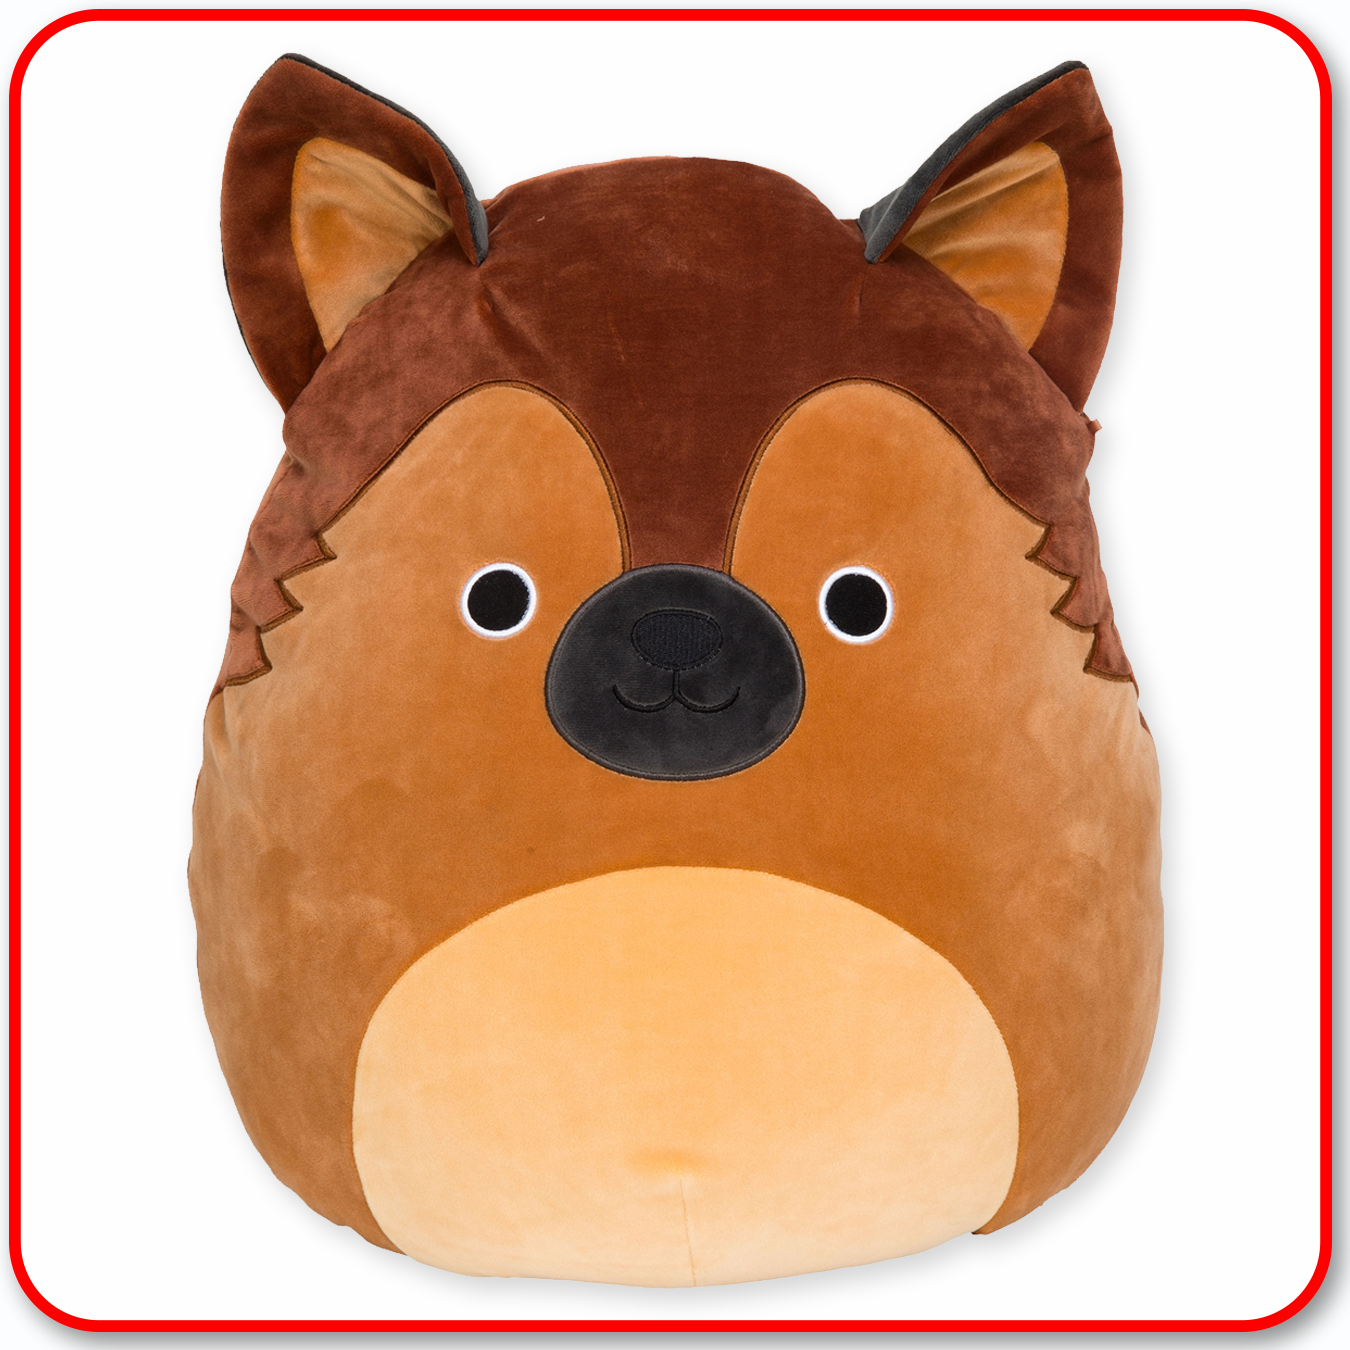 "Squishmallows - 12"" DOGS Mario the German Shepherd"